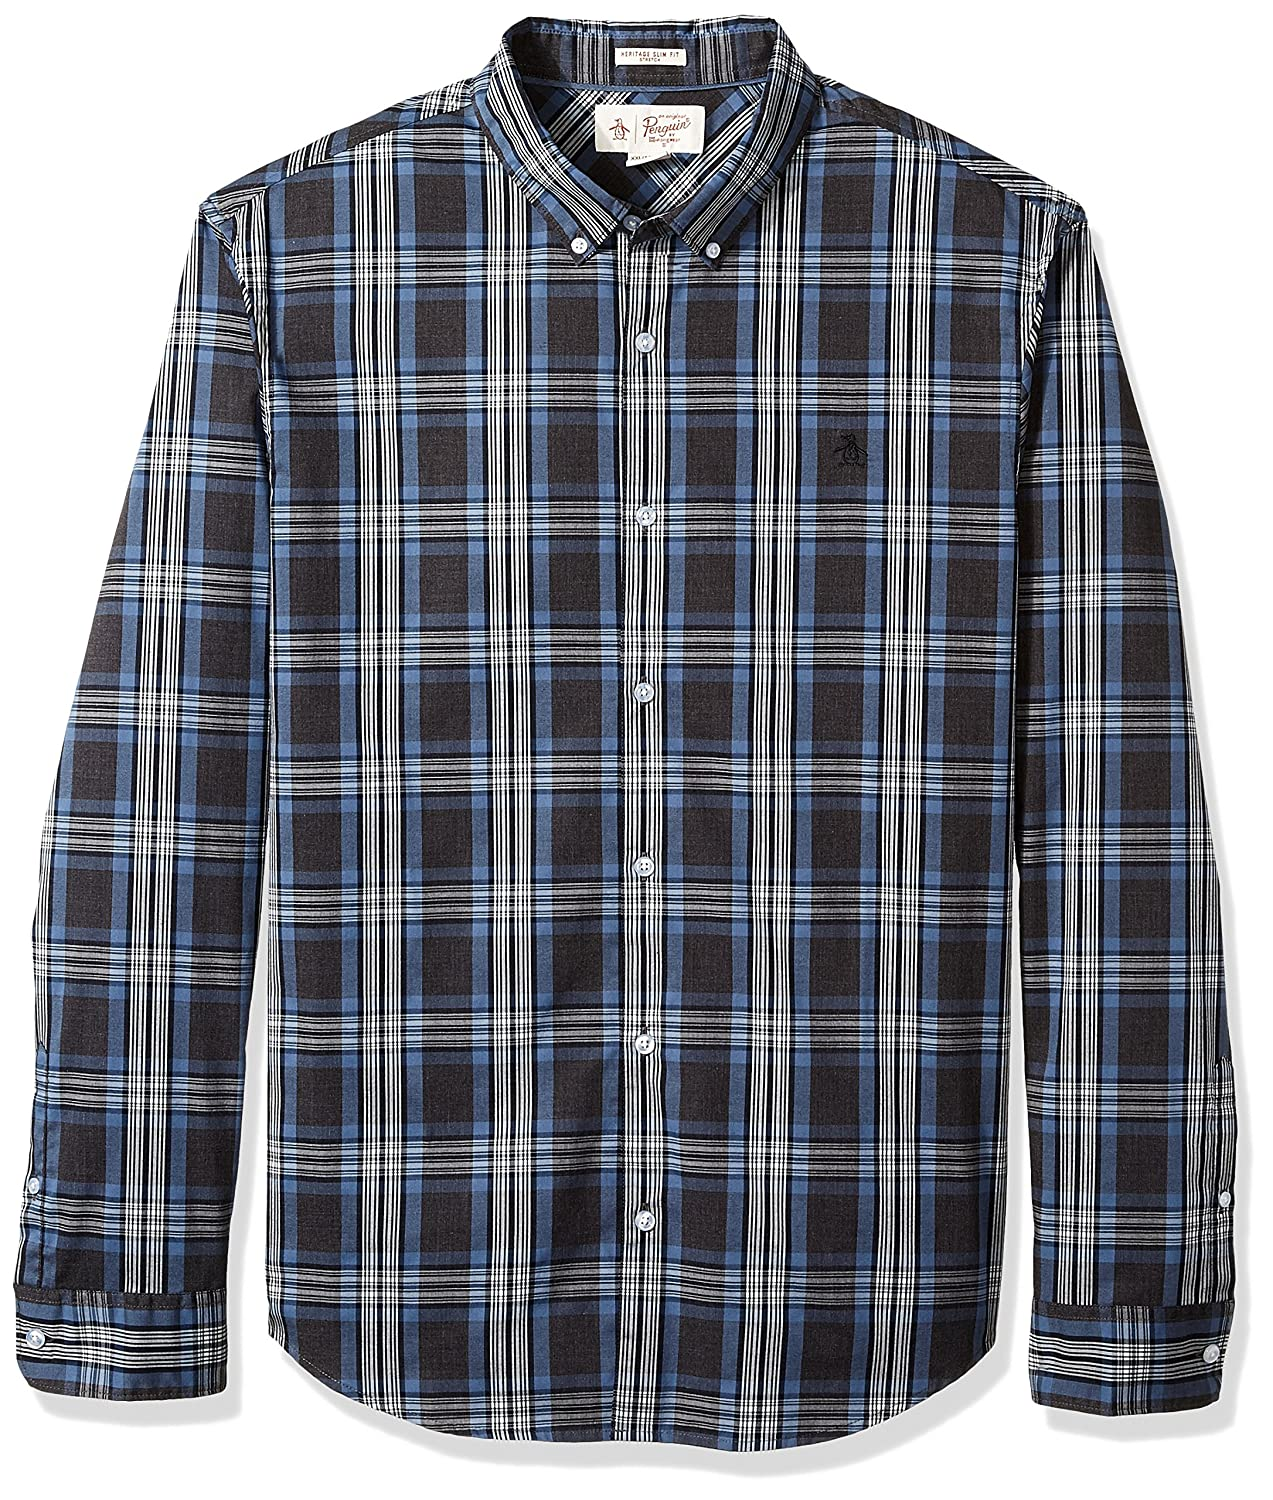 f6f14c9fee4 Original Penguin Men's Long Sleeve Heathered Plaid Shirt OPWH7C07